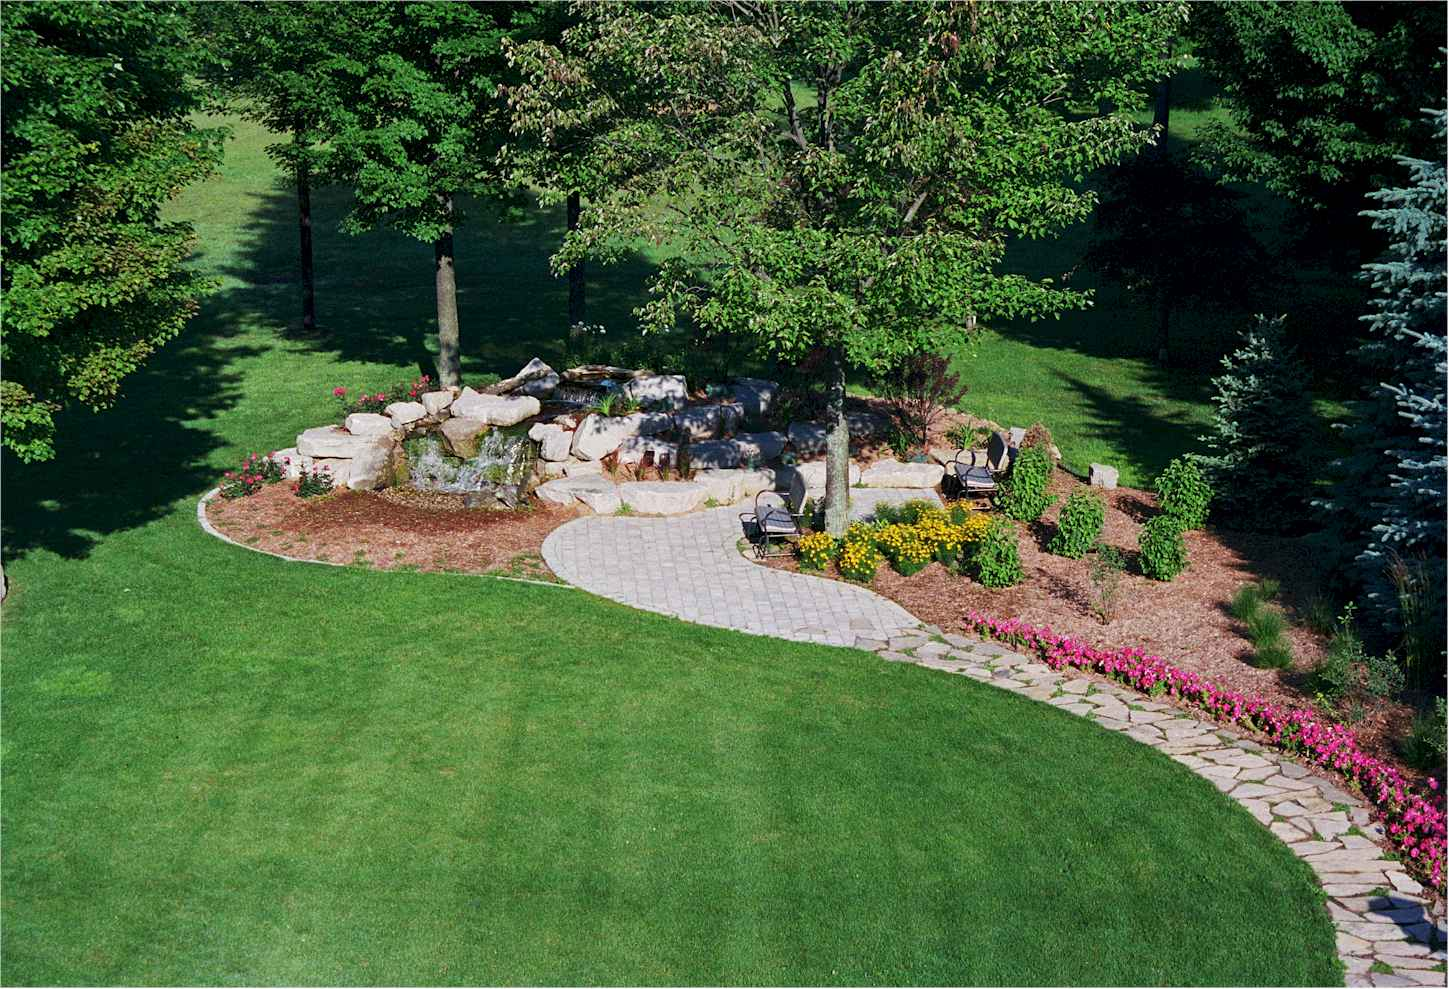 5 landscaping ideas to wow the neighbors Pictures of landscaping ideas